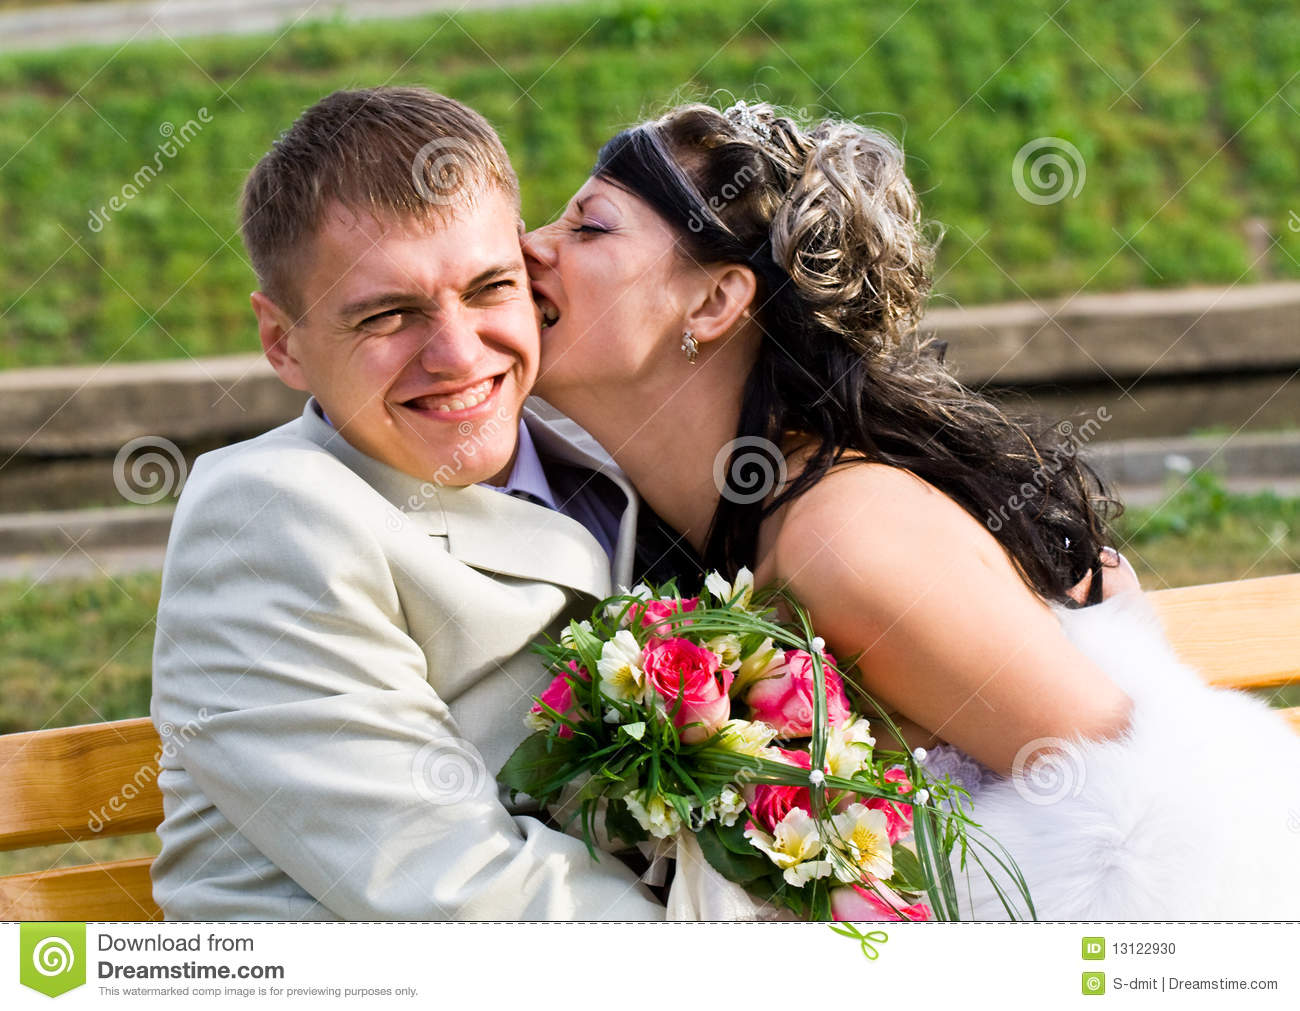 Bridegroom невесты